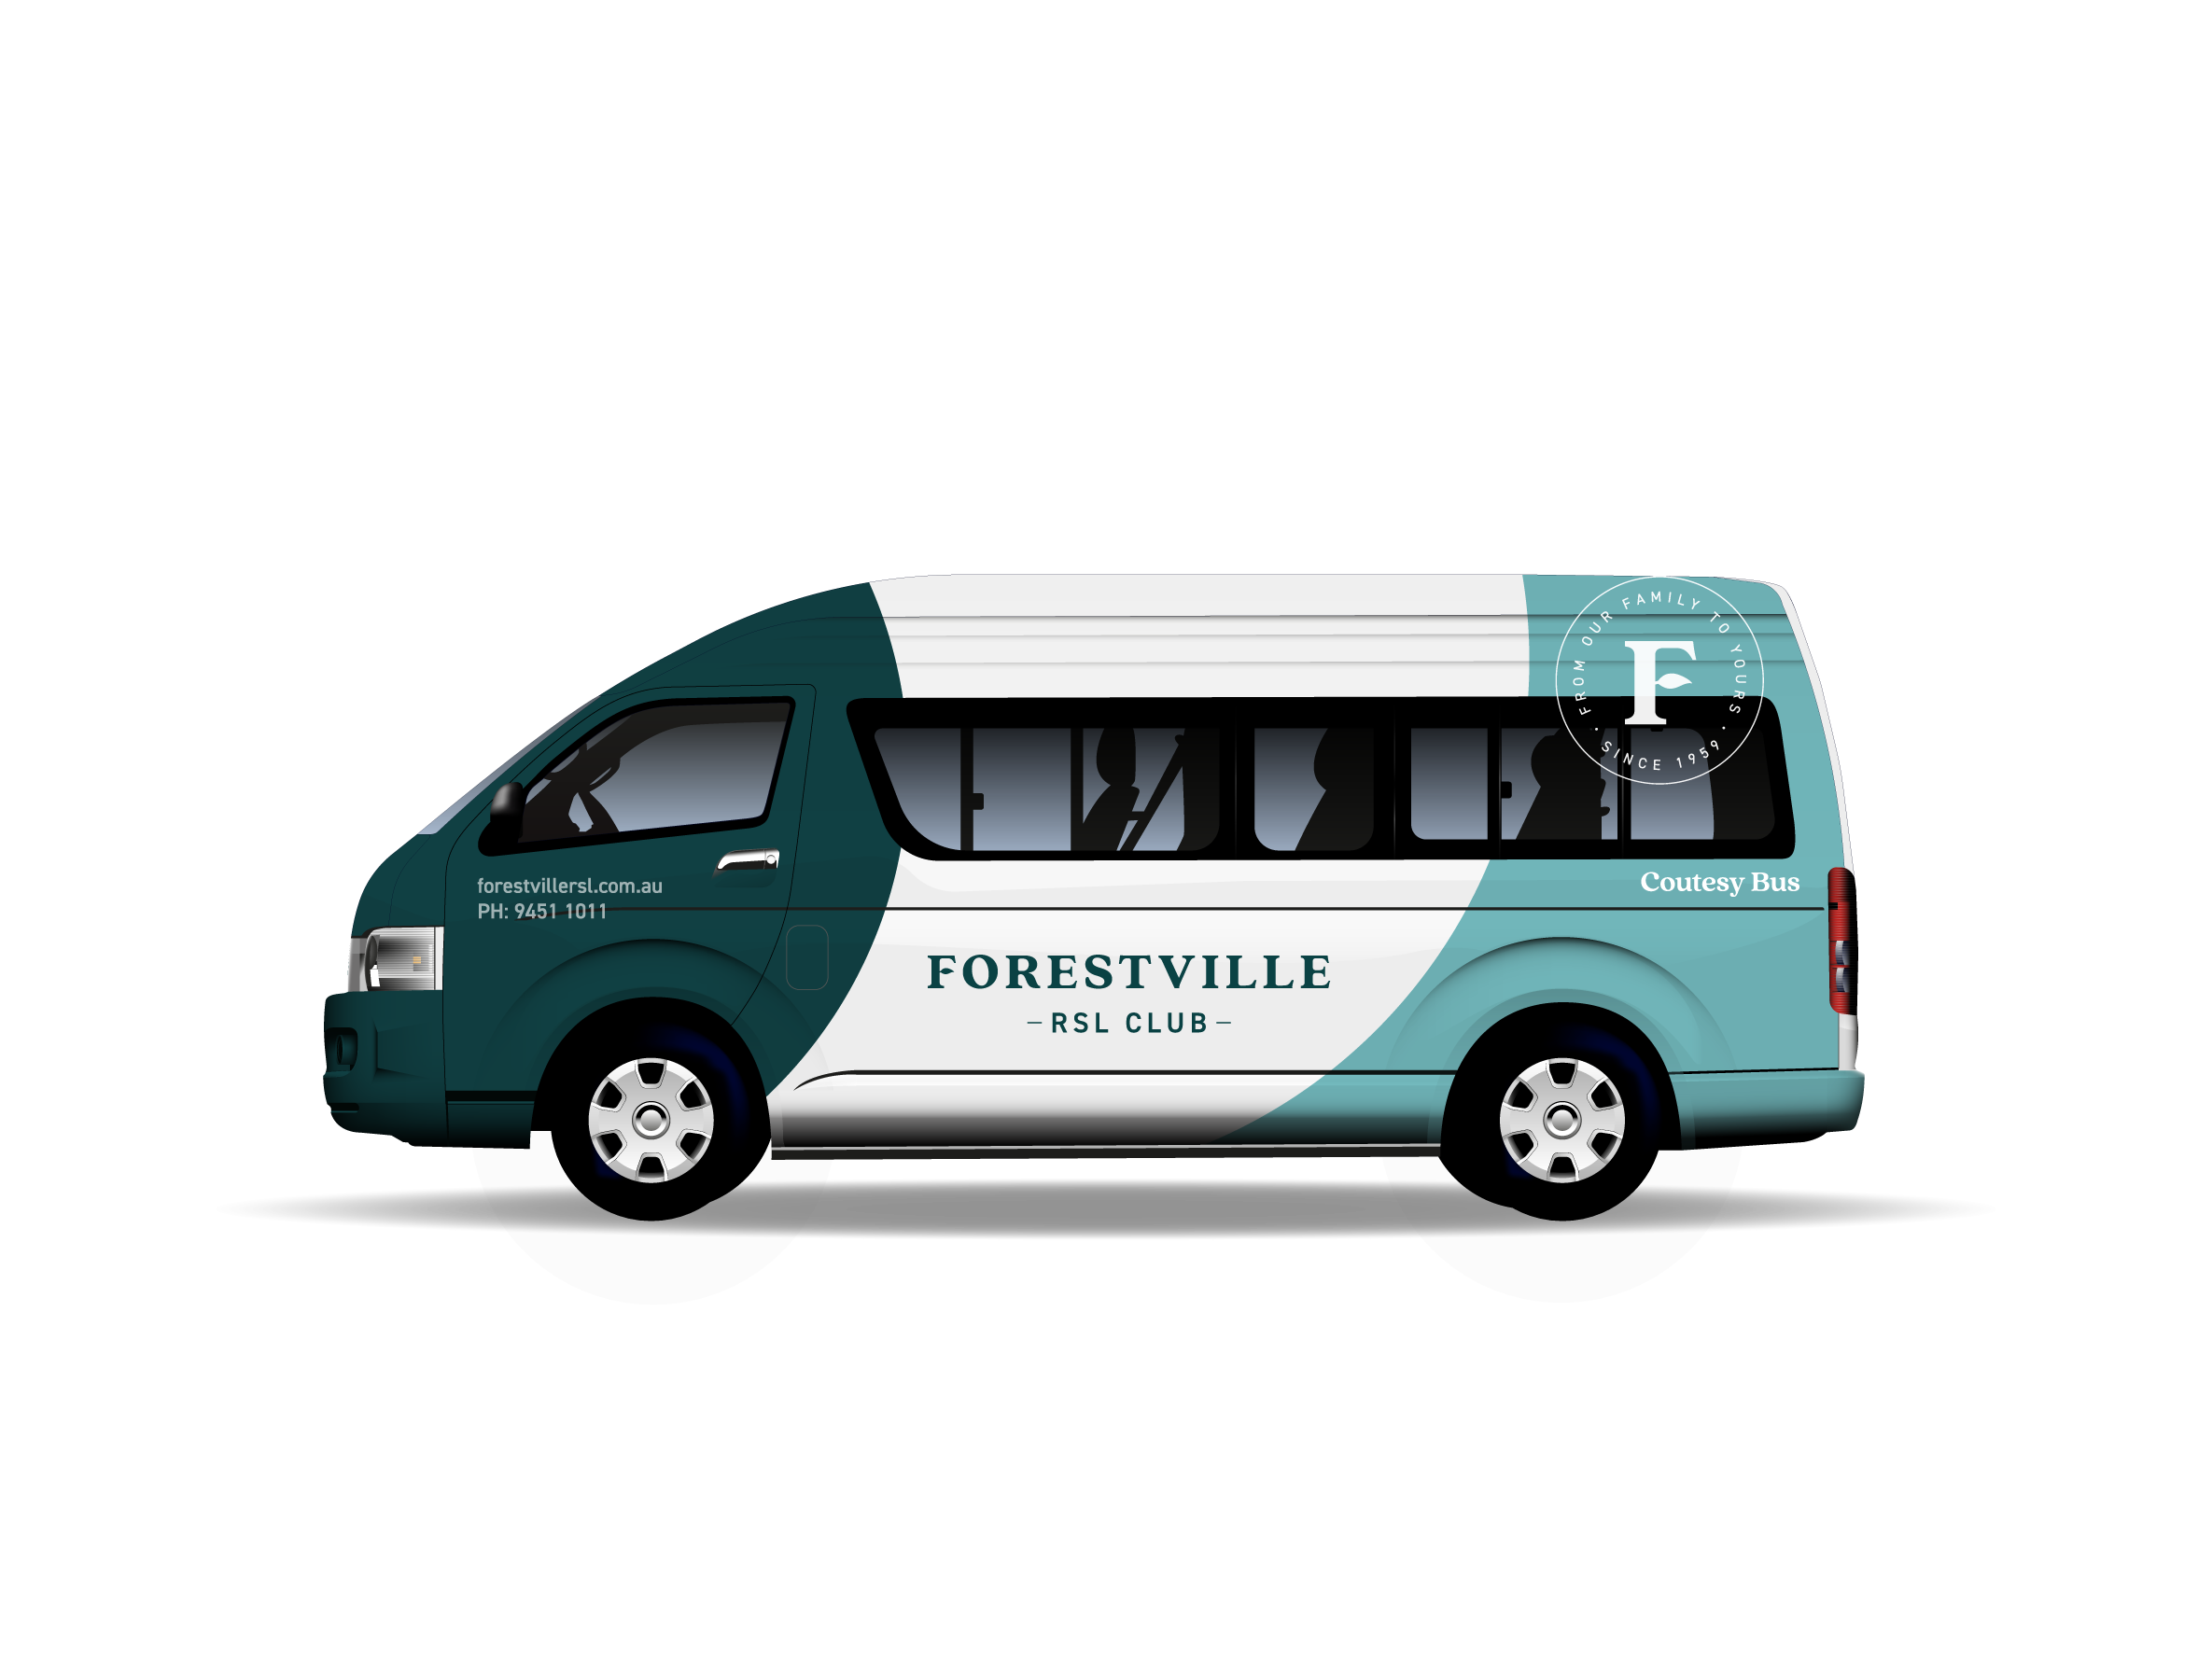 Forestville RSL Club Shuttle Bus